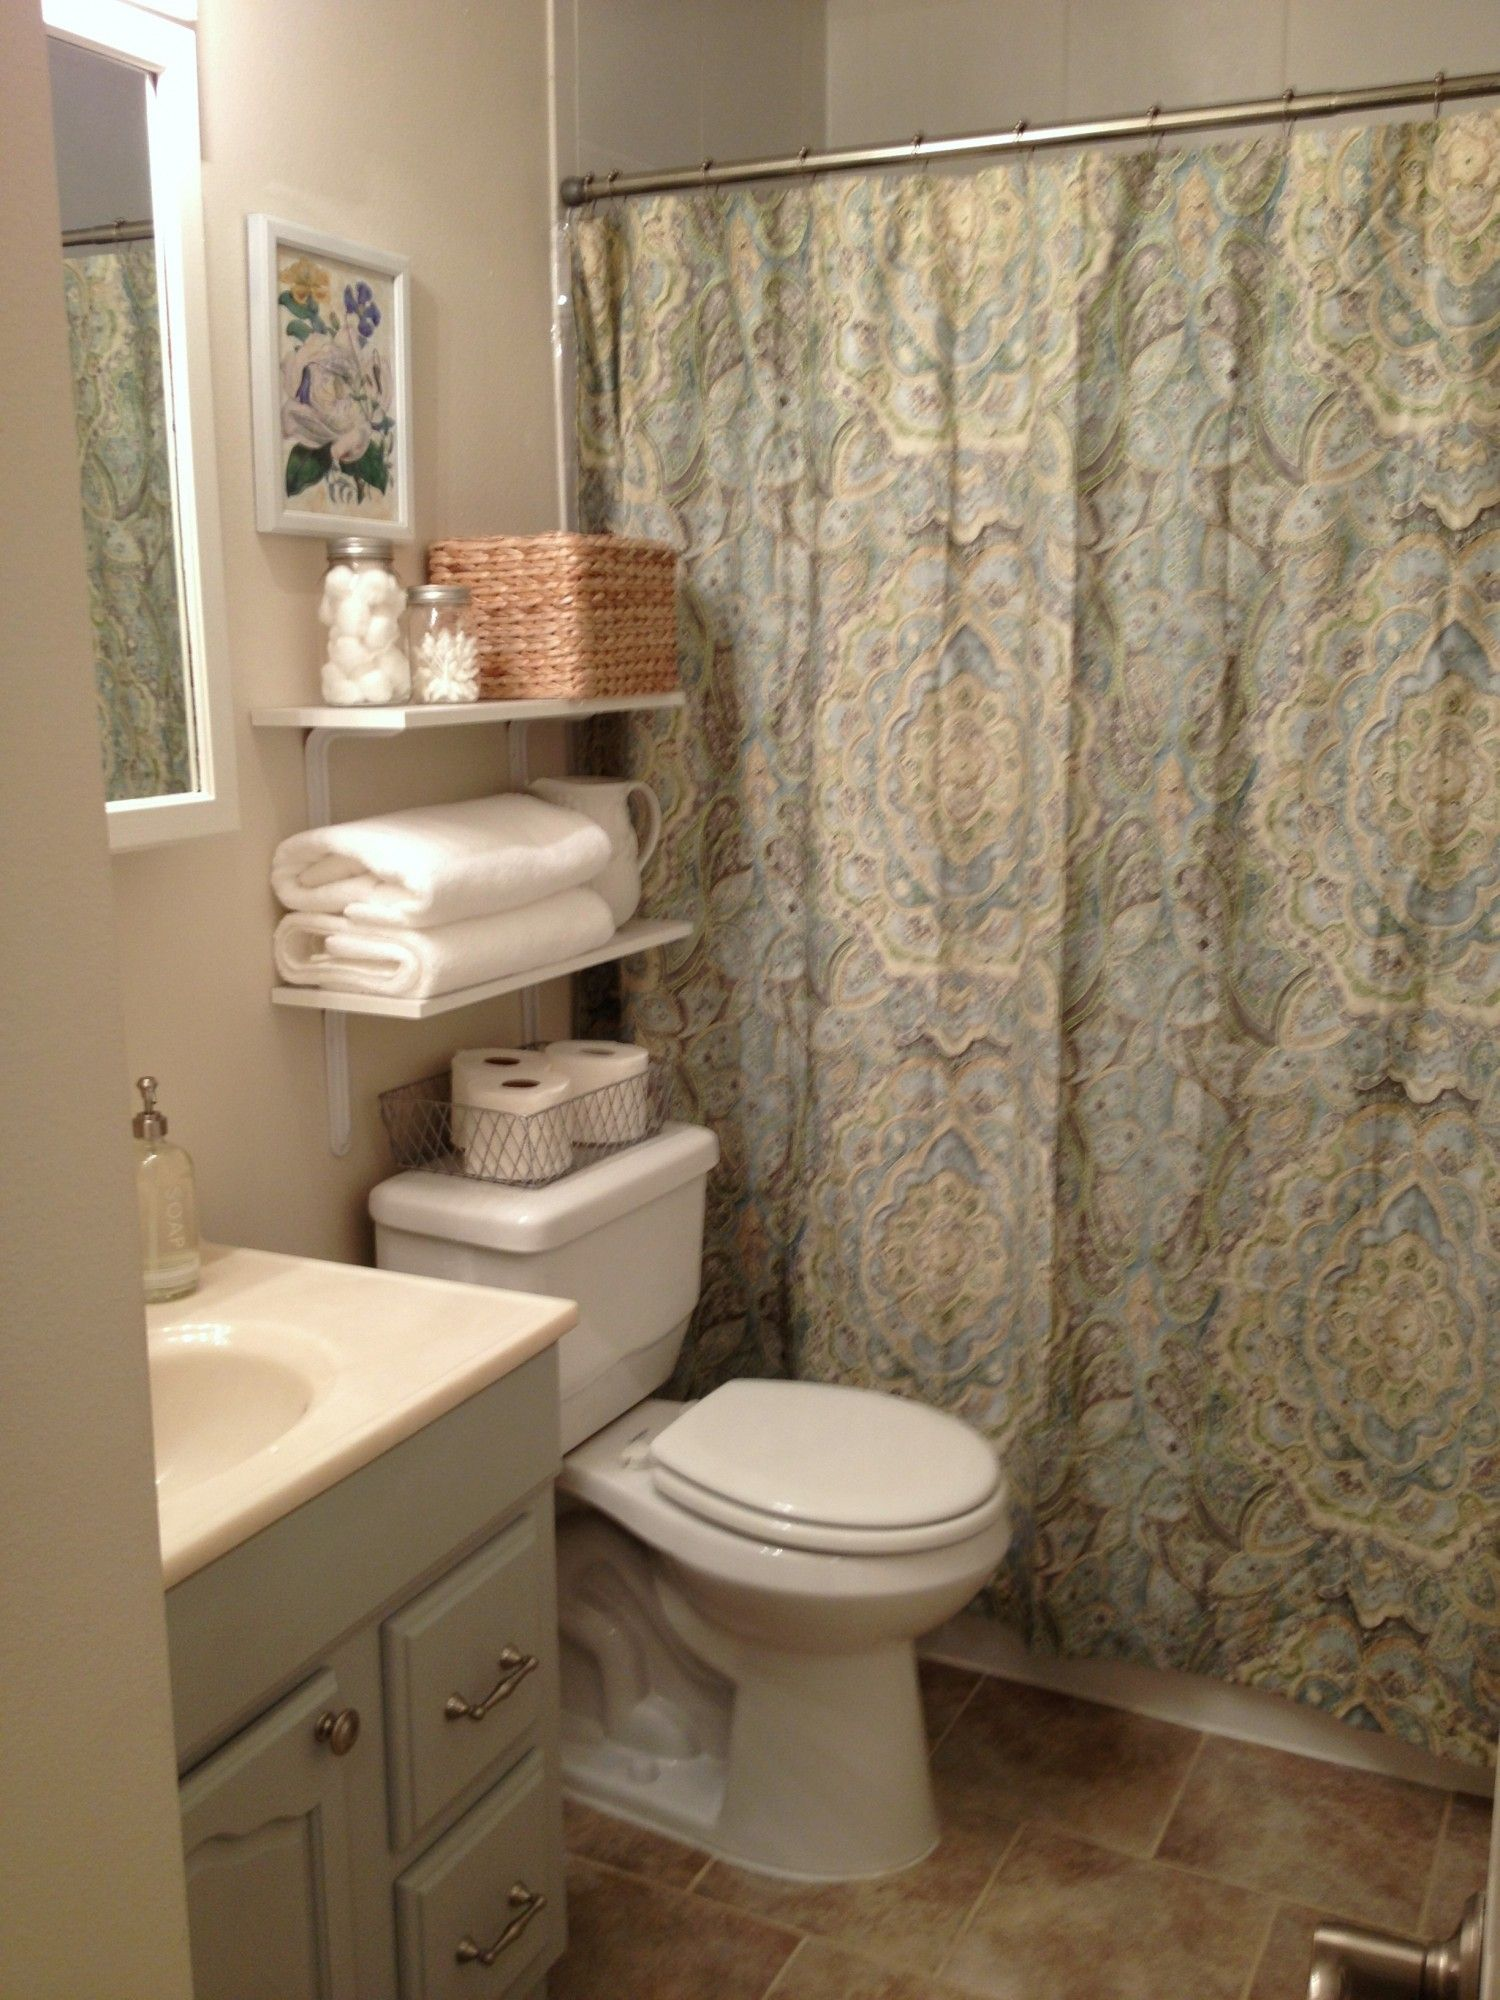 Guest Bathroom Ideas Here Is A Little Side By Side Just Because - Wall mount sinks small bathrooms for bathroom decor ideas